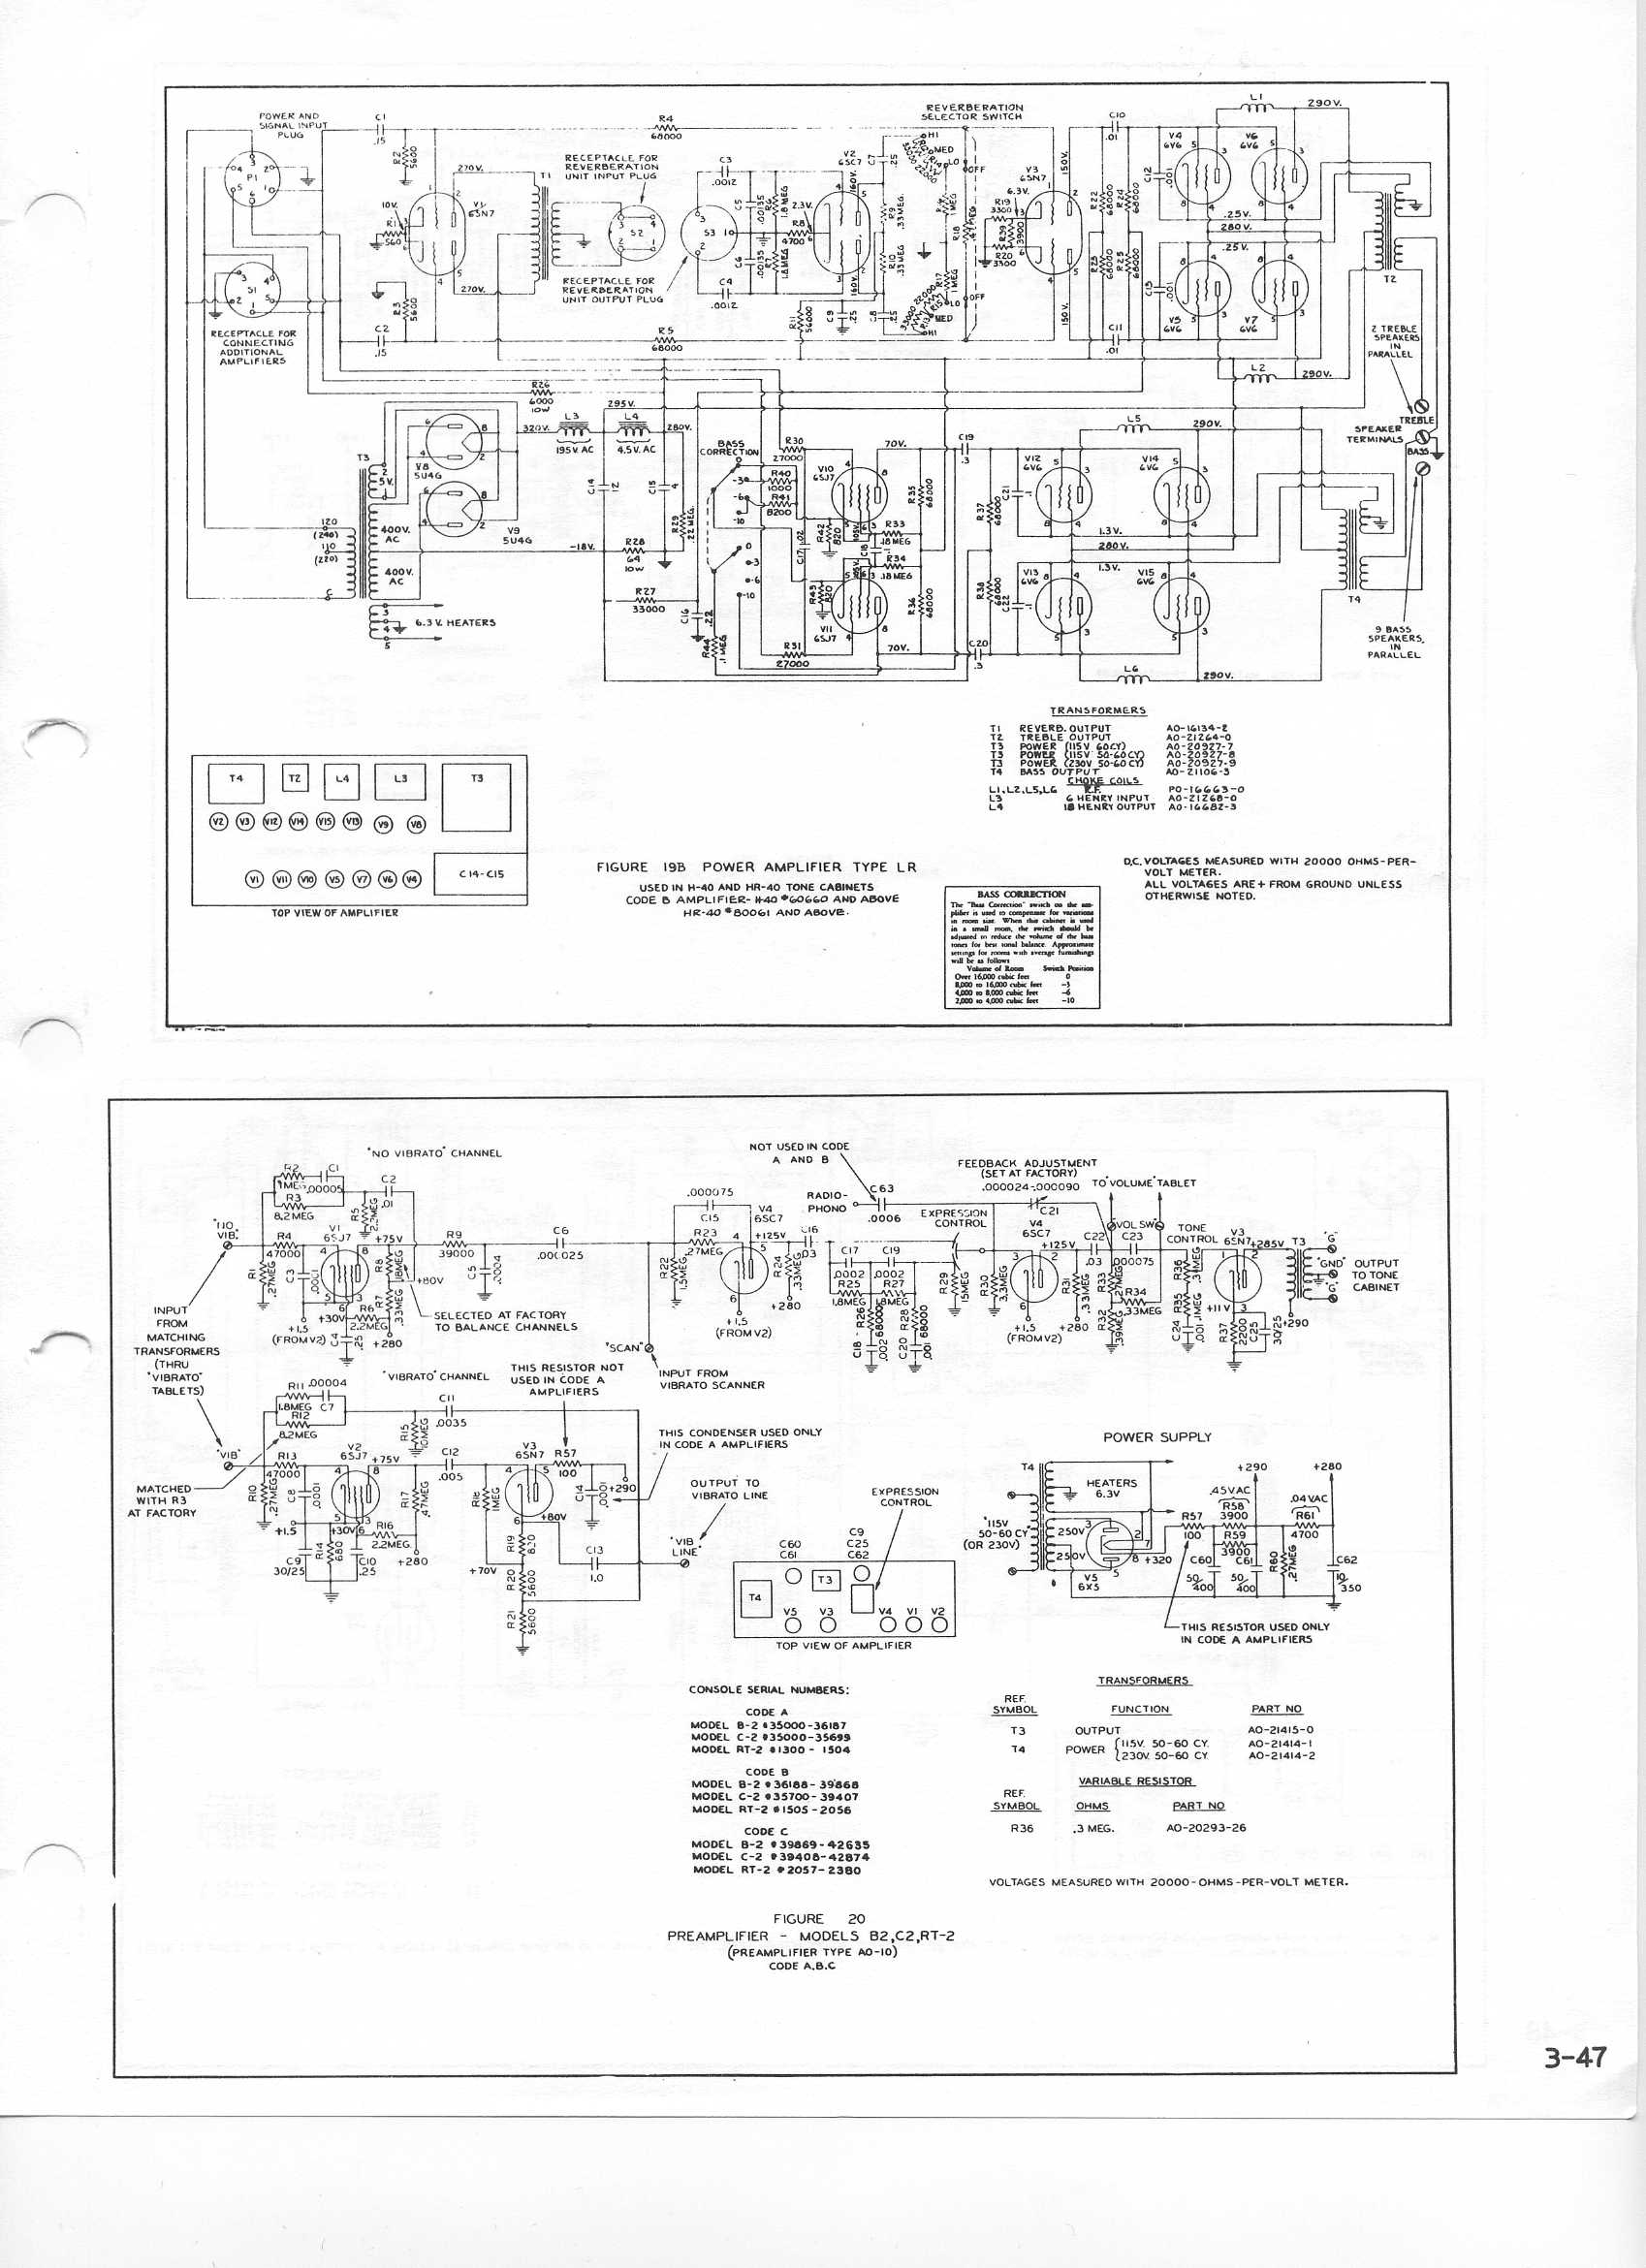 Results Page 12 About Preamp Searching Circuits At Stereo Preamplifier With Adjustment Tone By Tca5550 Hammond C2 Organ